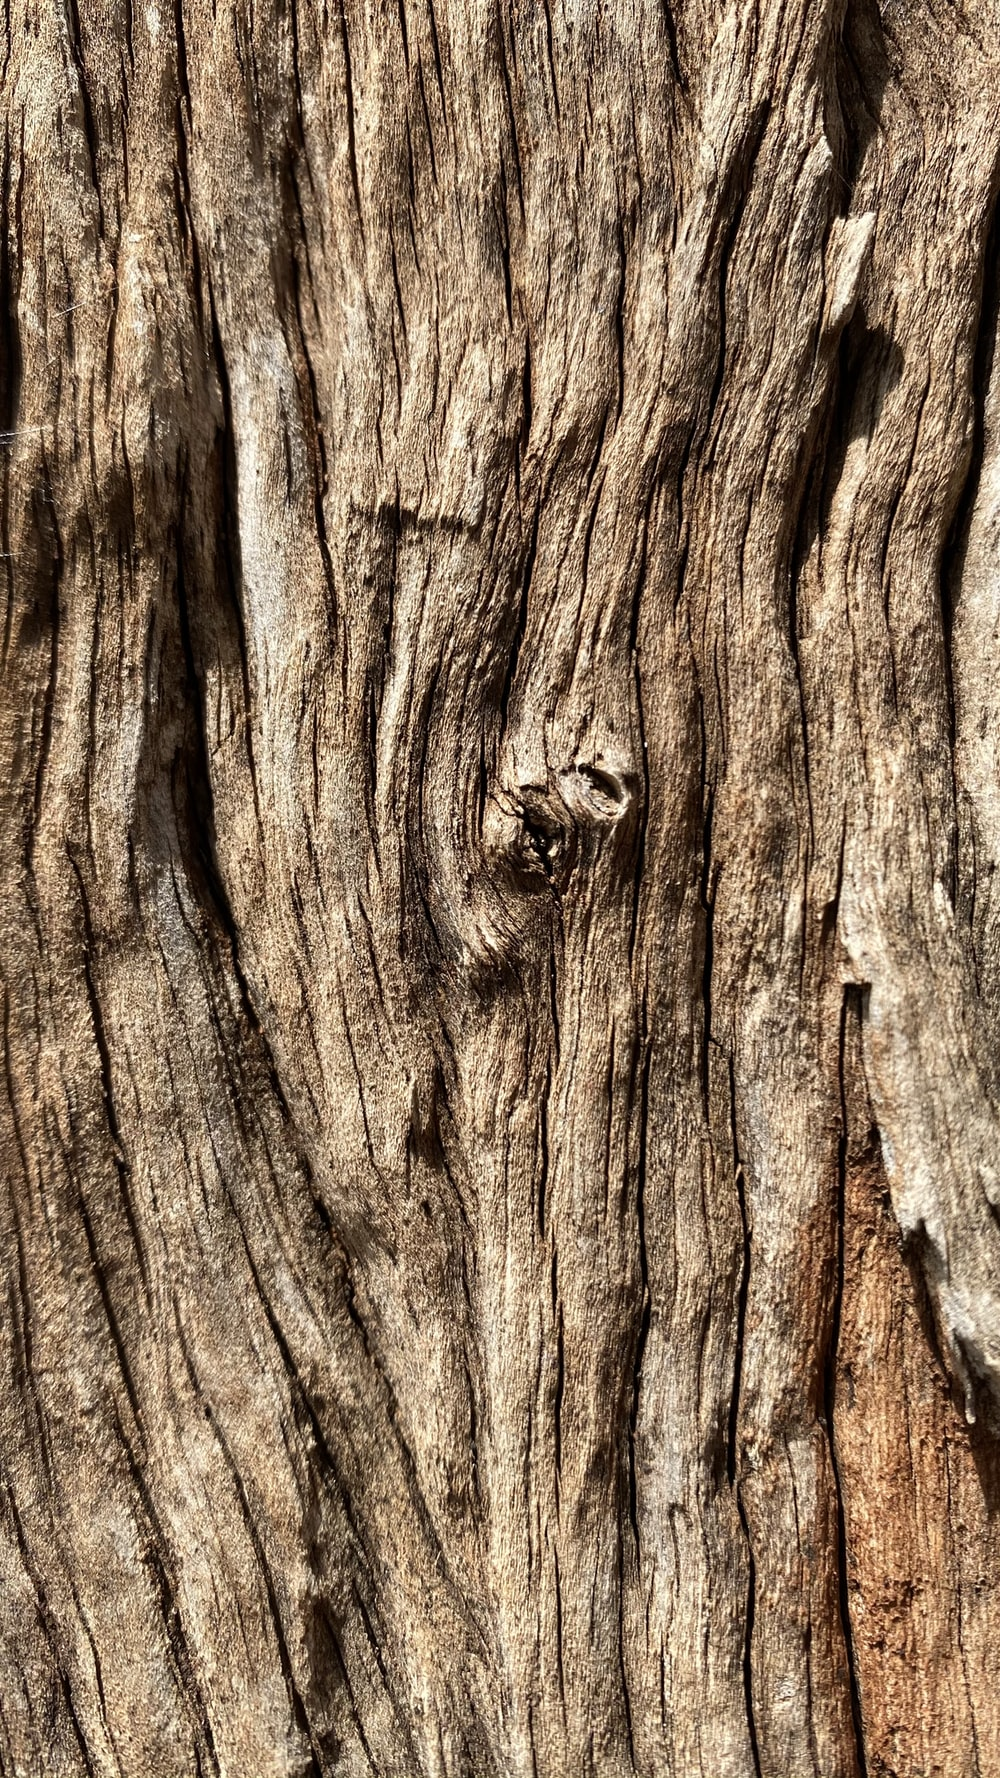 brown wood trunk in close up photography